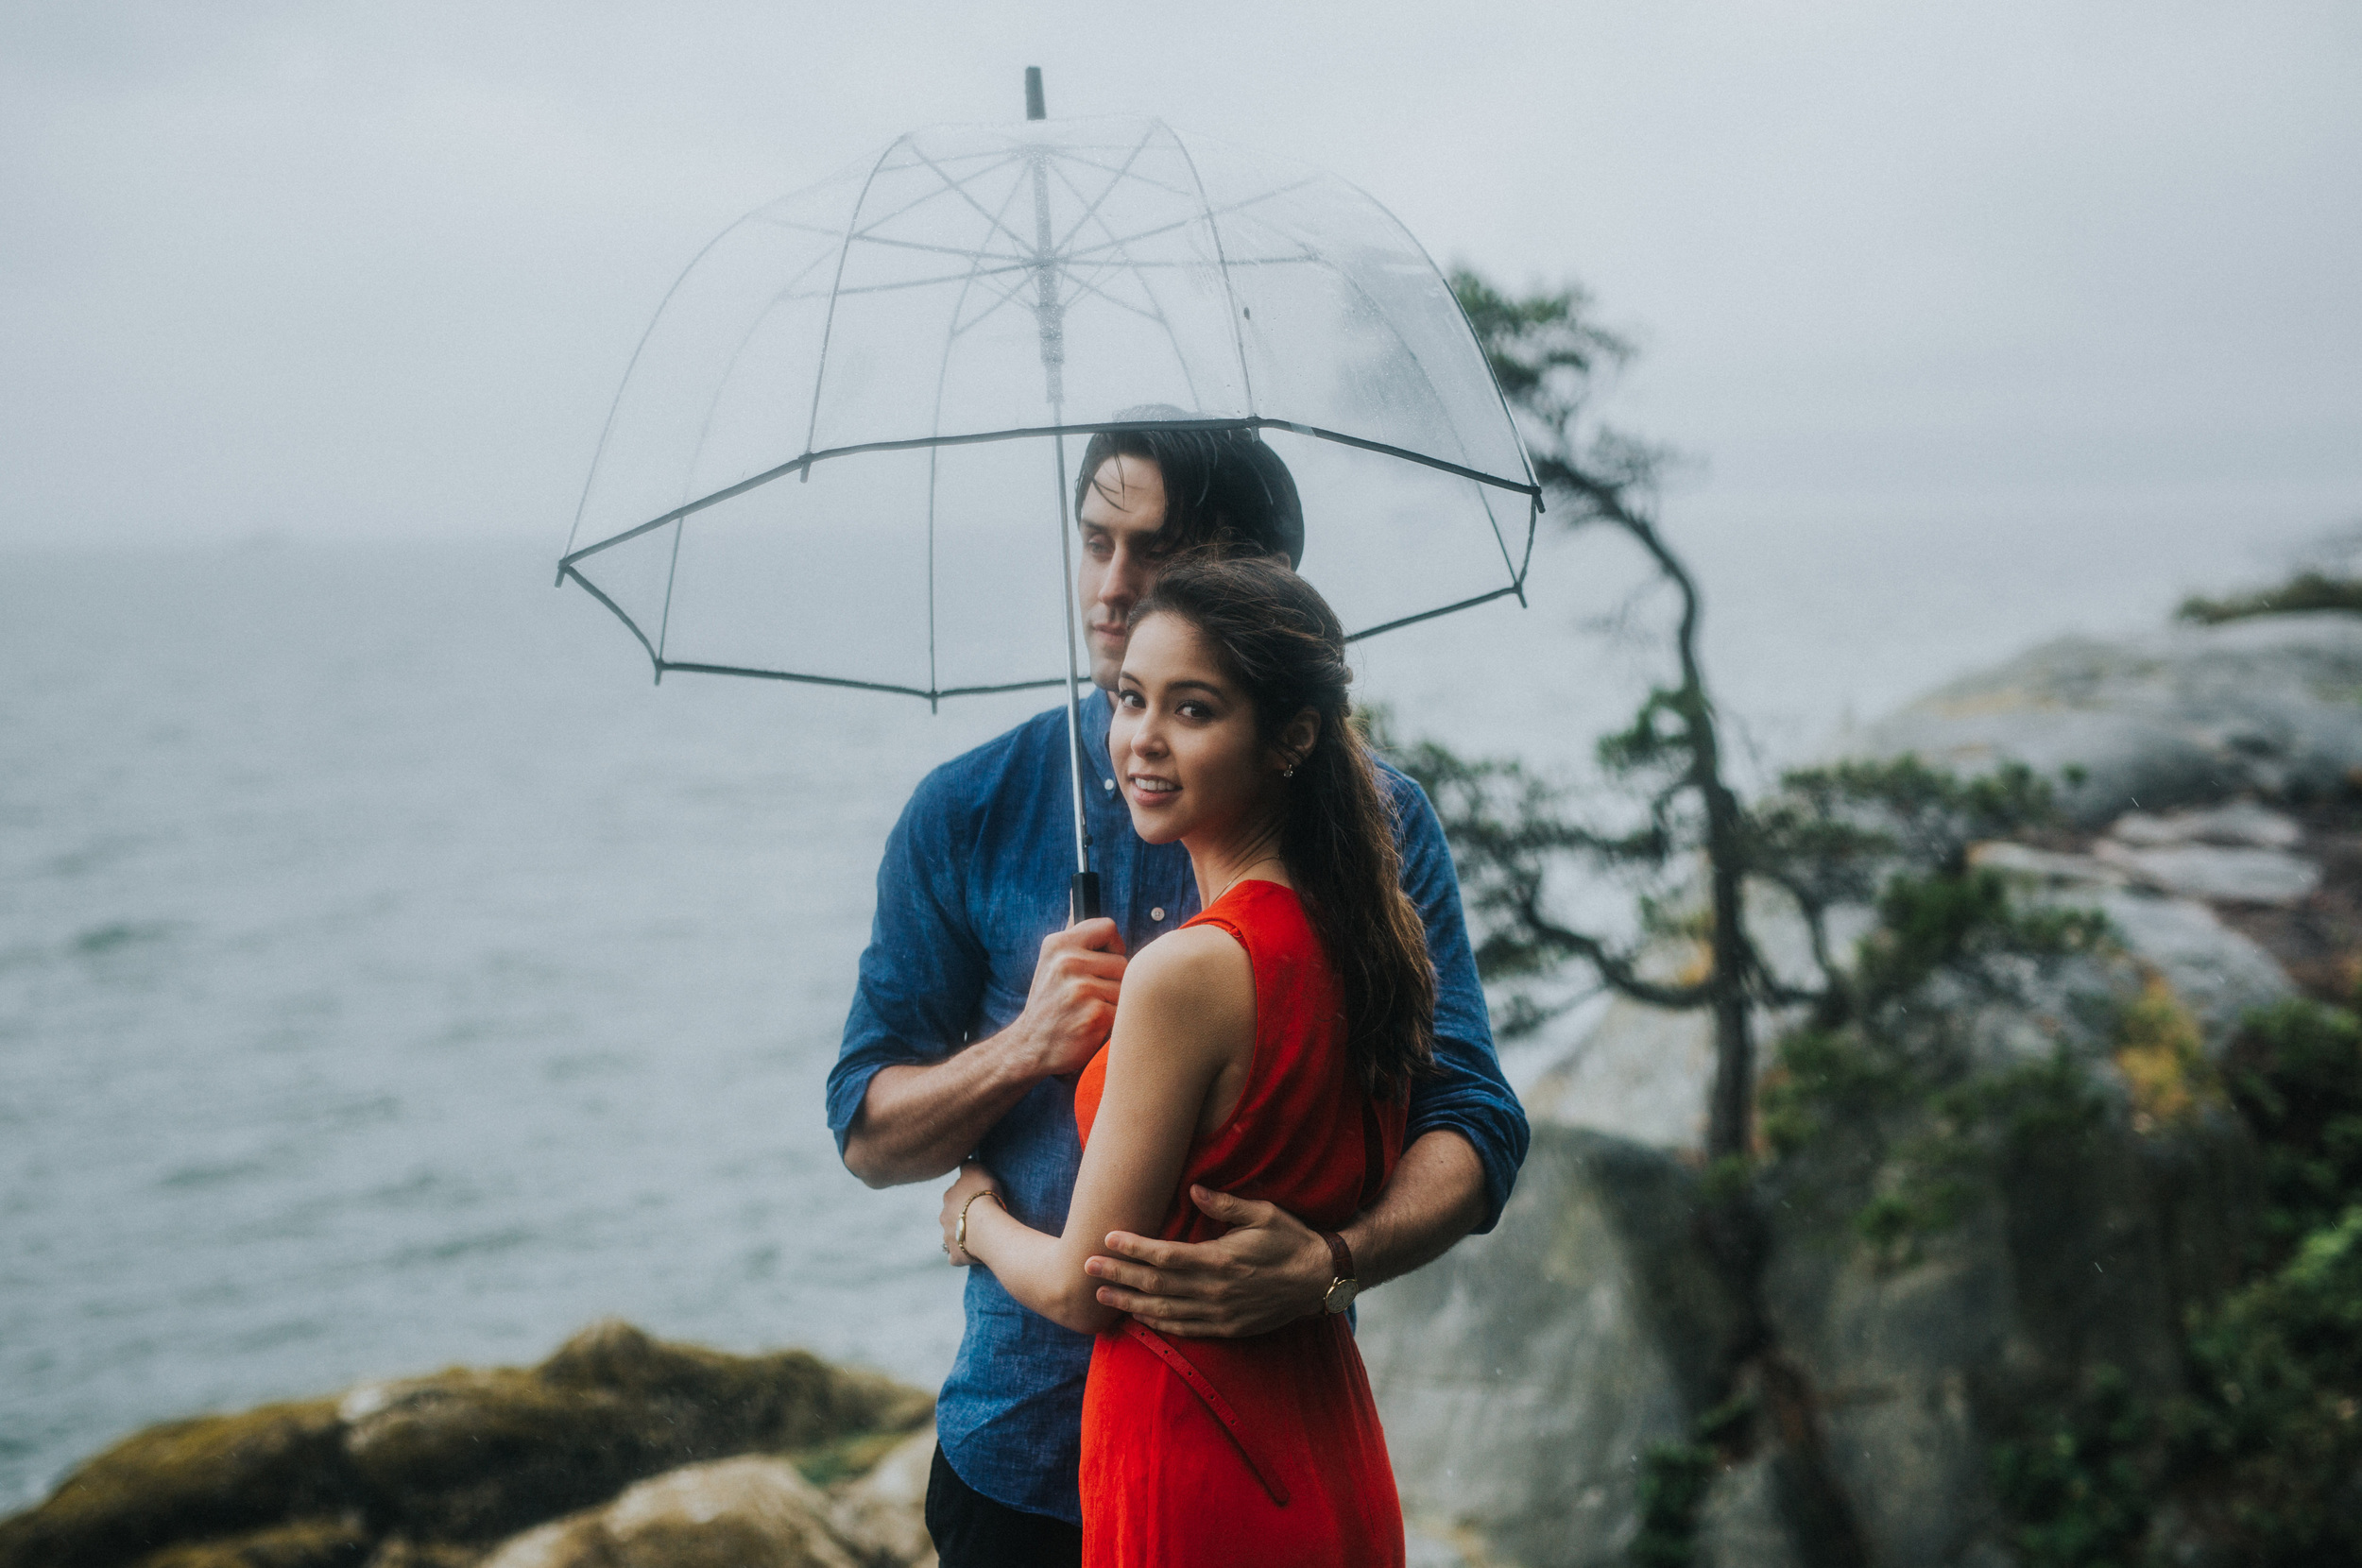 IMG_0477 LIGHTHOUSE PARK ENGAGEMENT PHOTOS VANCOUVER WEDDING PHOTOGRAPHER JENNIFER PICARD PHOTOGRAPHY 2.jpg